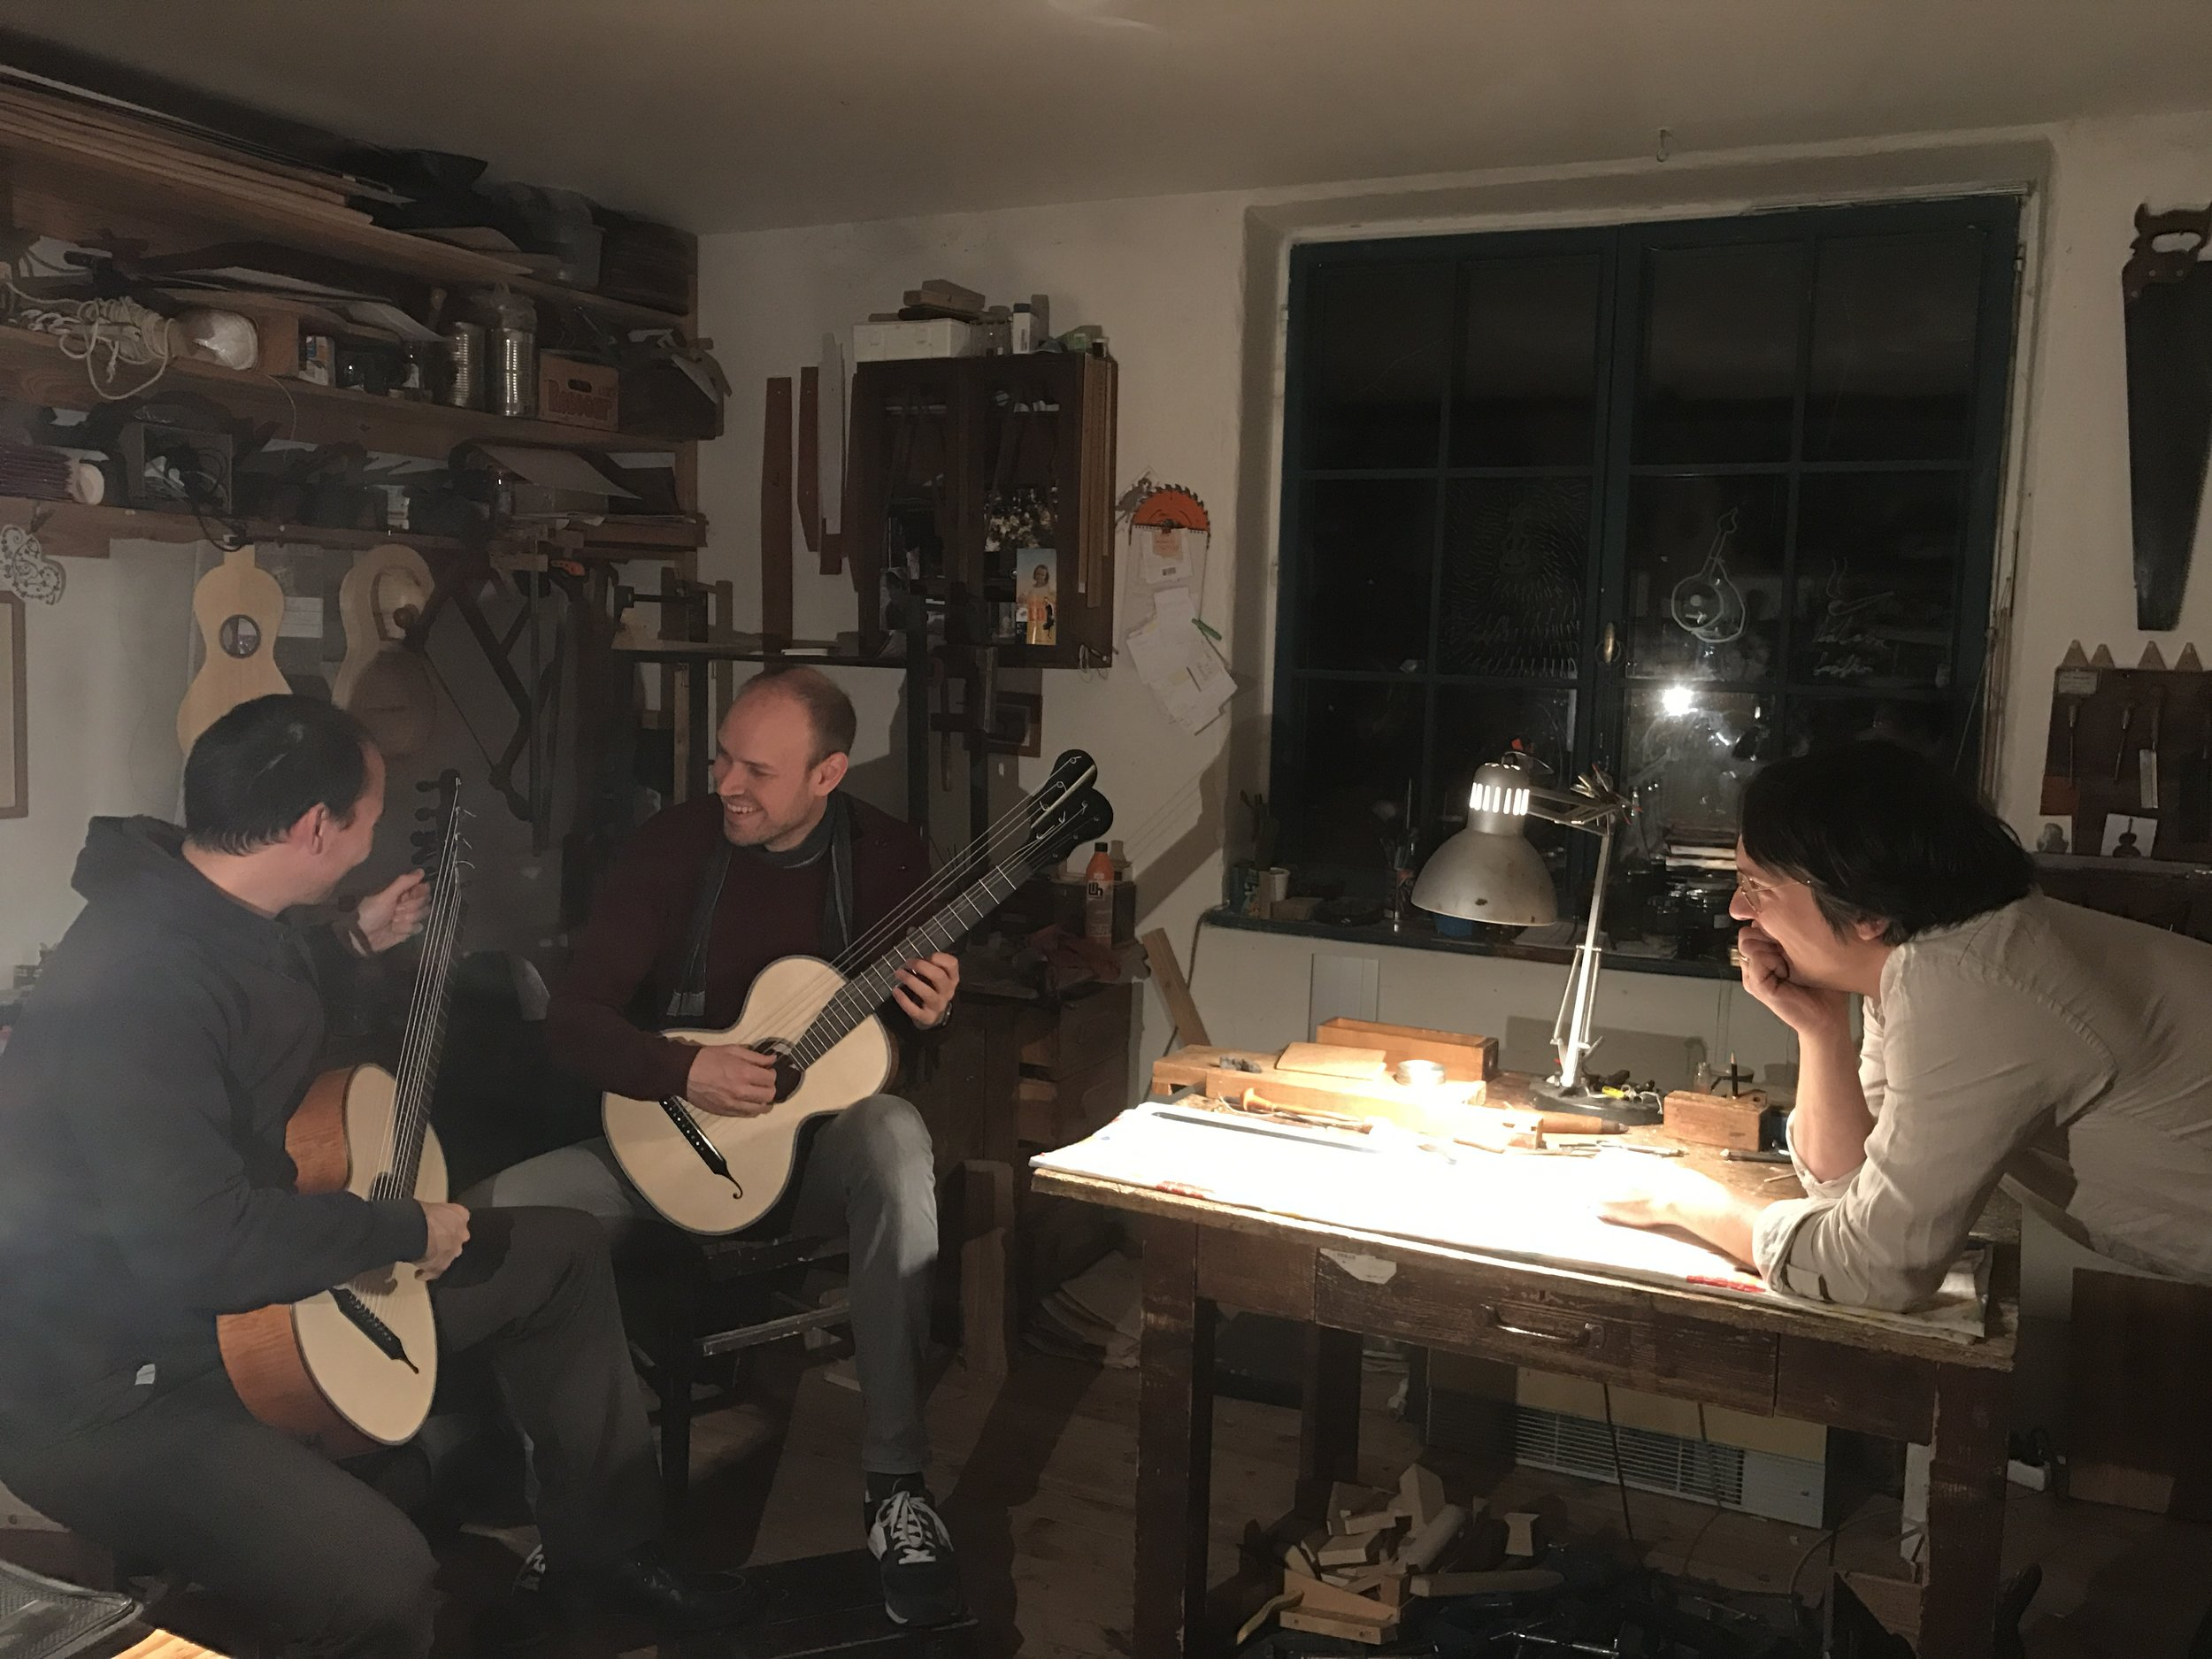 Visiting the workshop of luthier Jan Tulacek, who built the guitars played by Duo Morat-Fergo